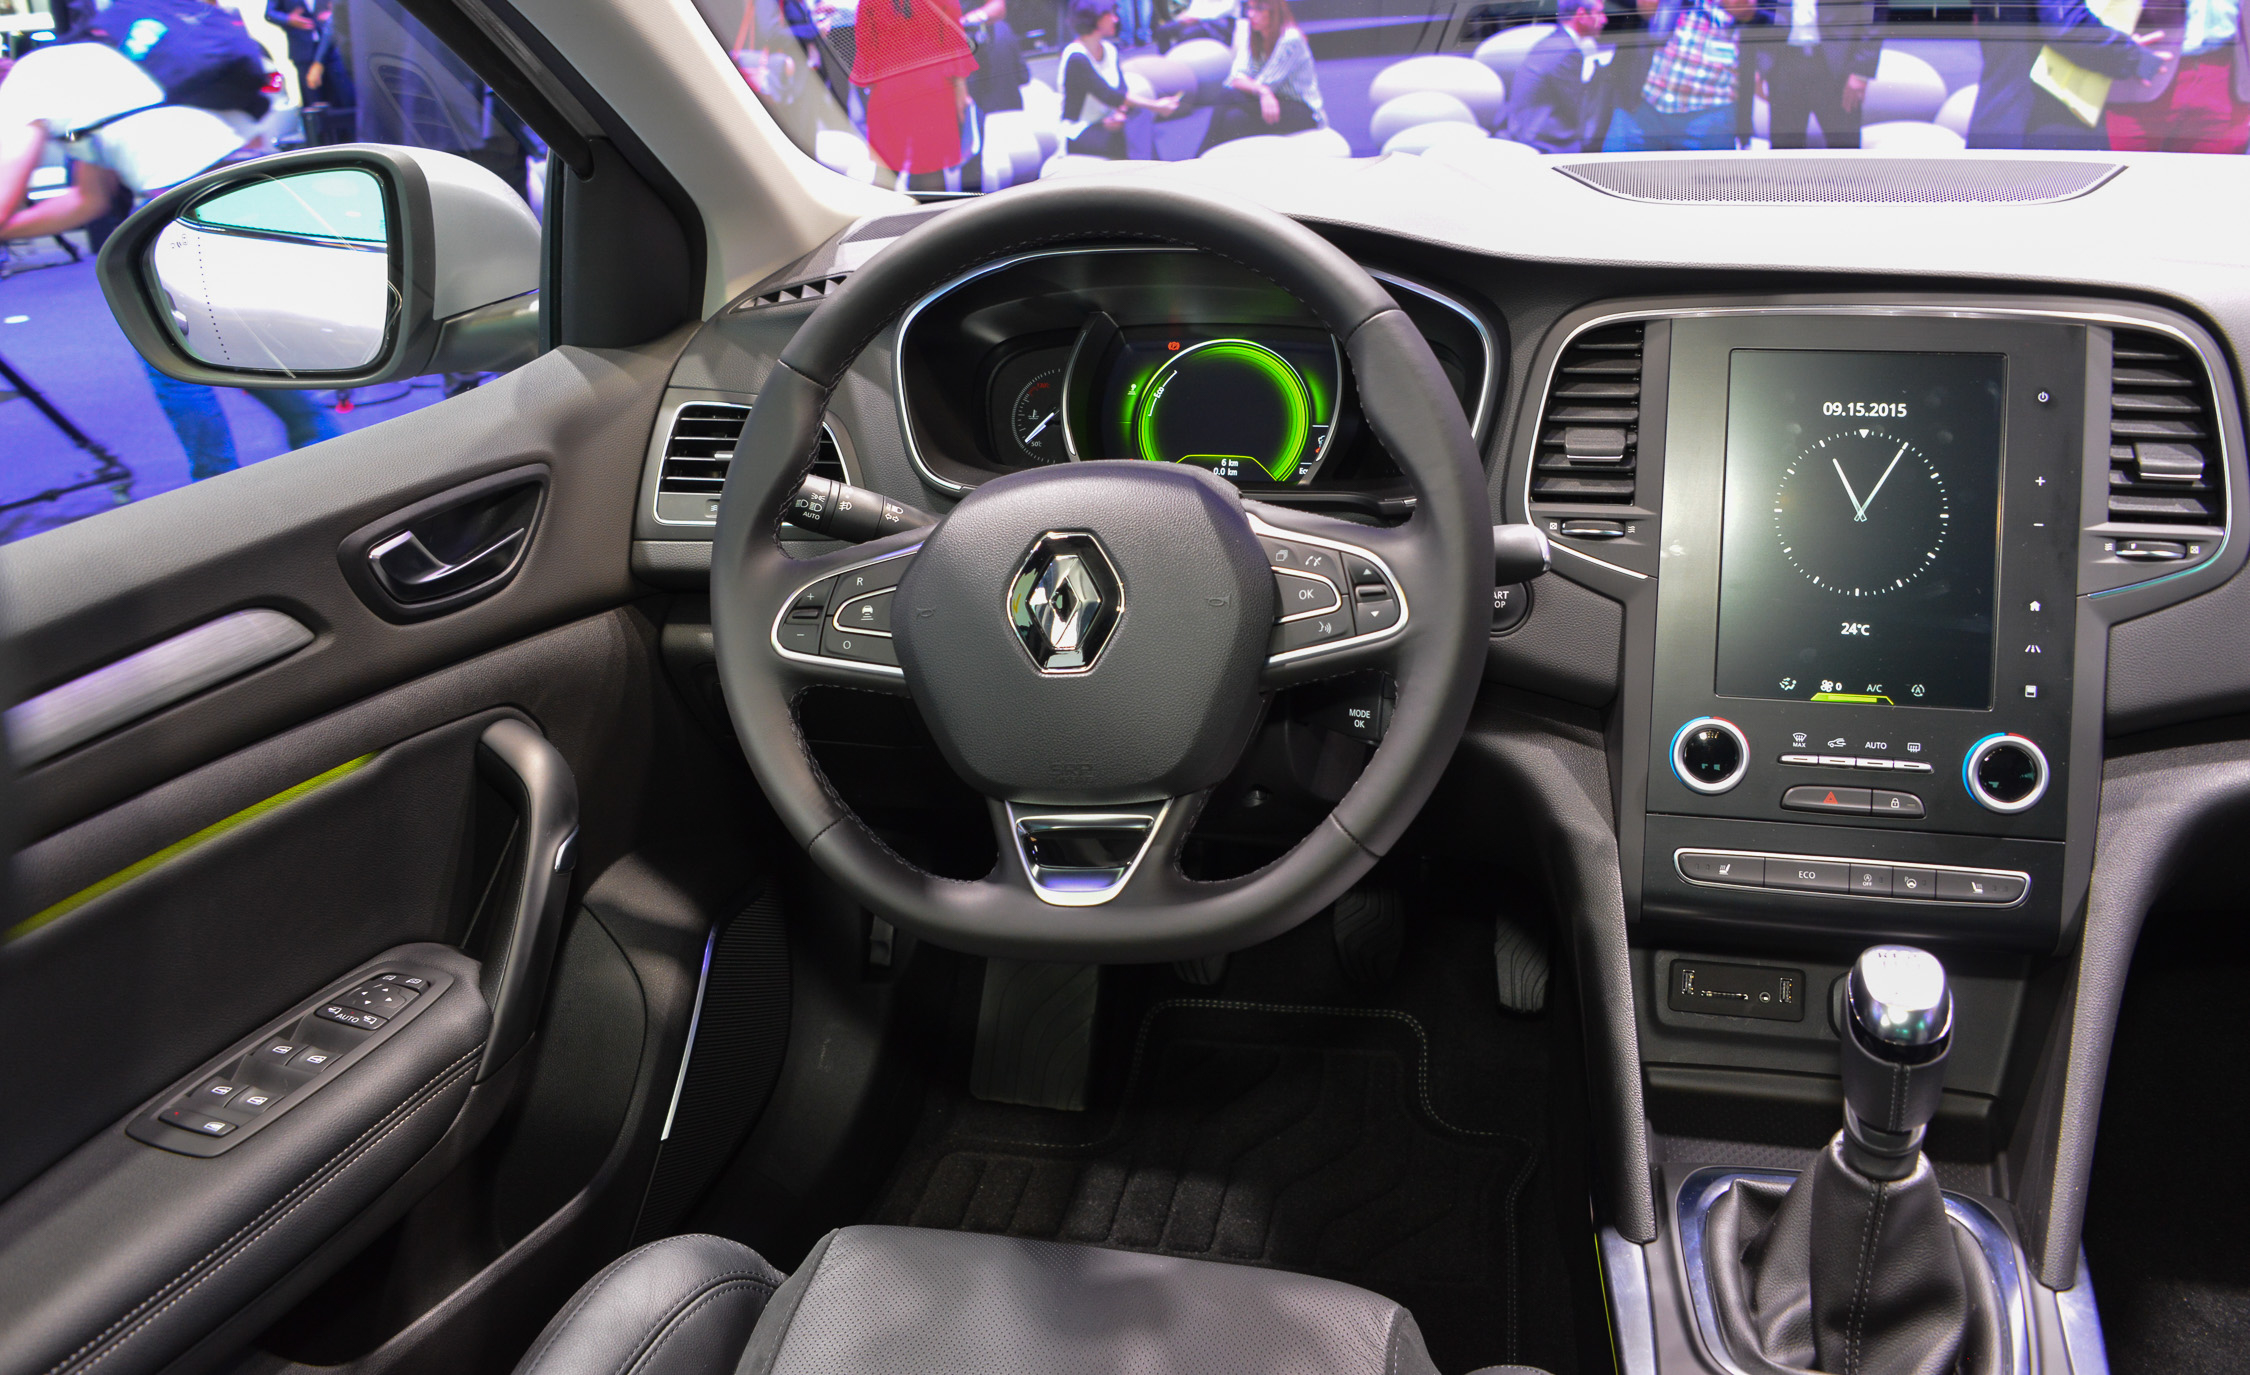 2016 Renault Megane Dashboard And Head Unit (View 17 of 27)